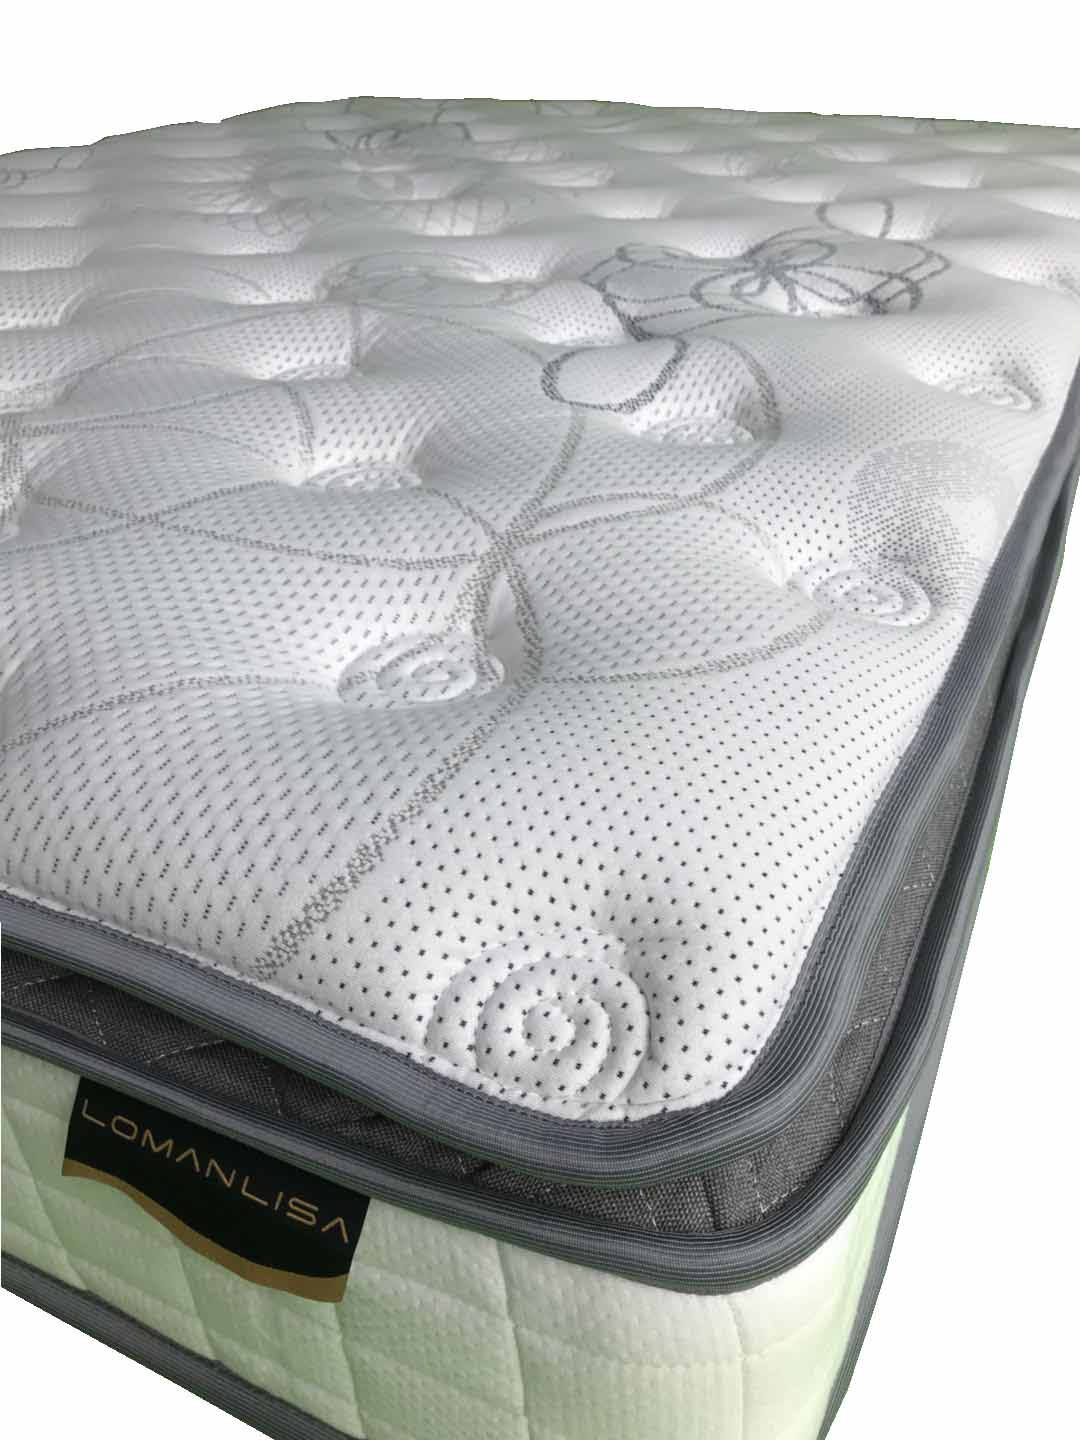 Posture Care Kingsingle Size Pocket Spring Mattress